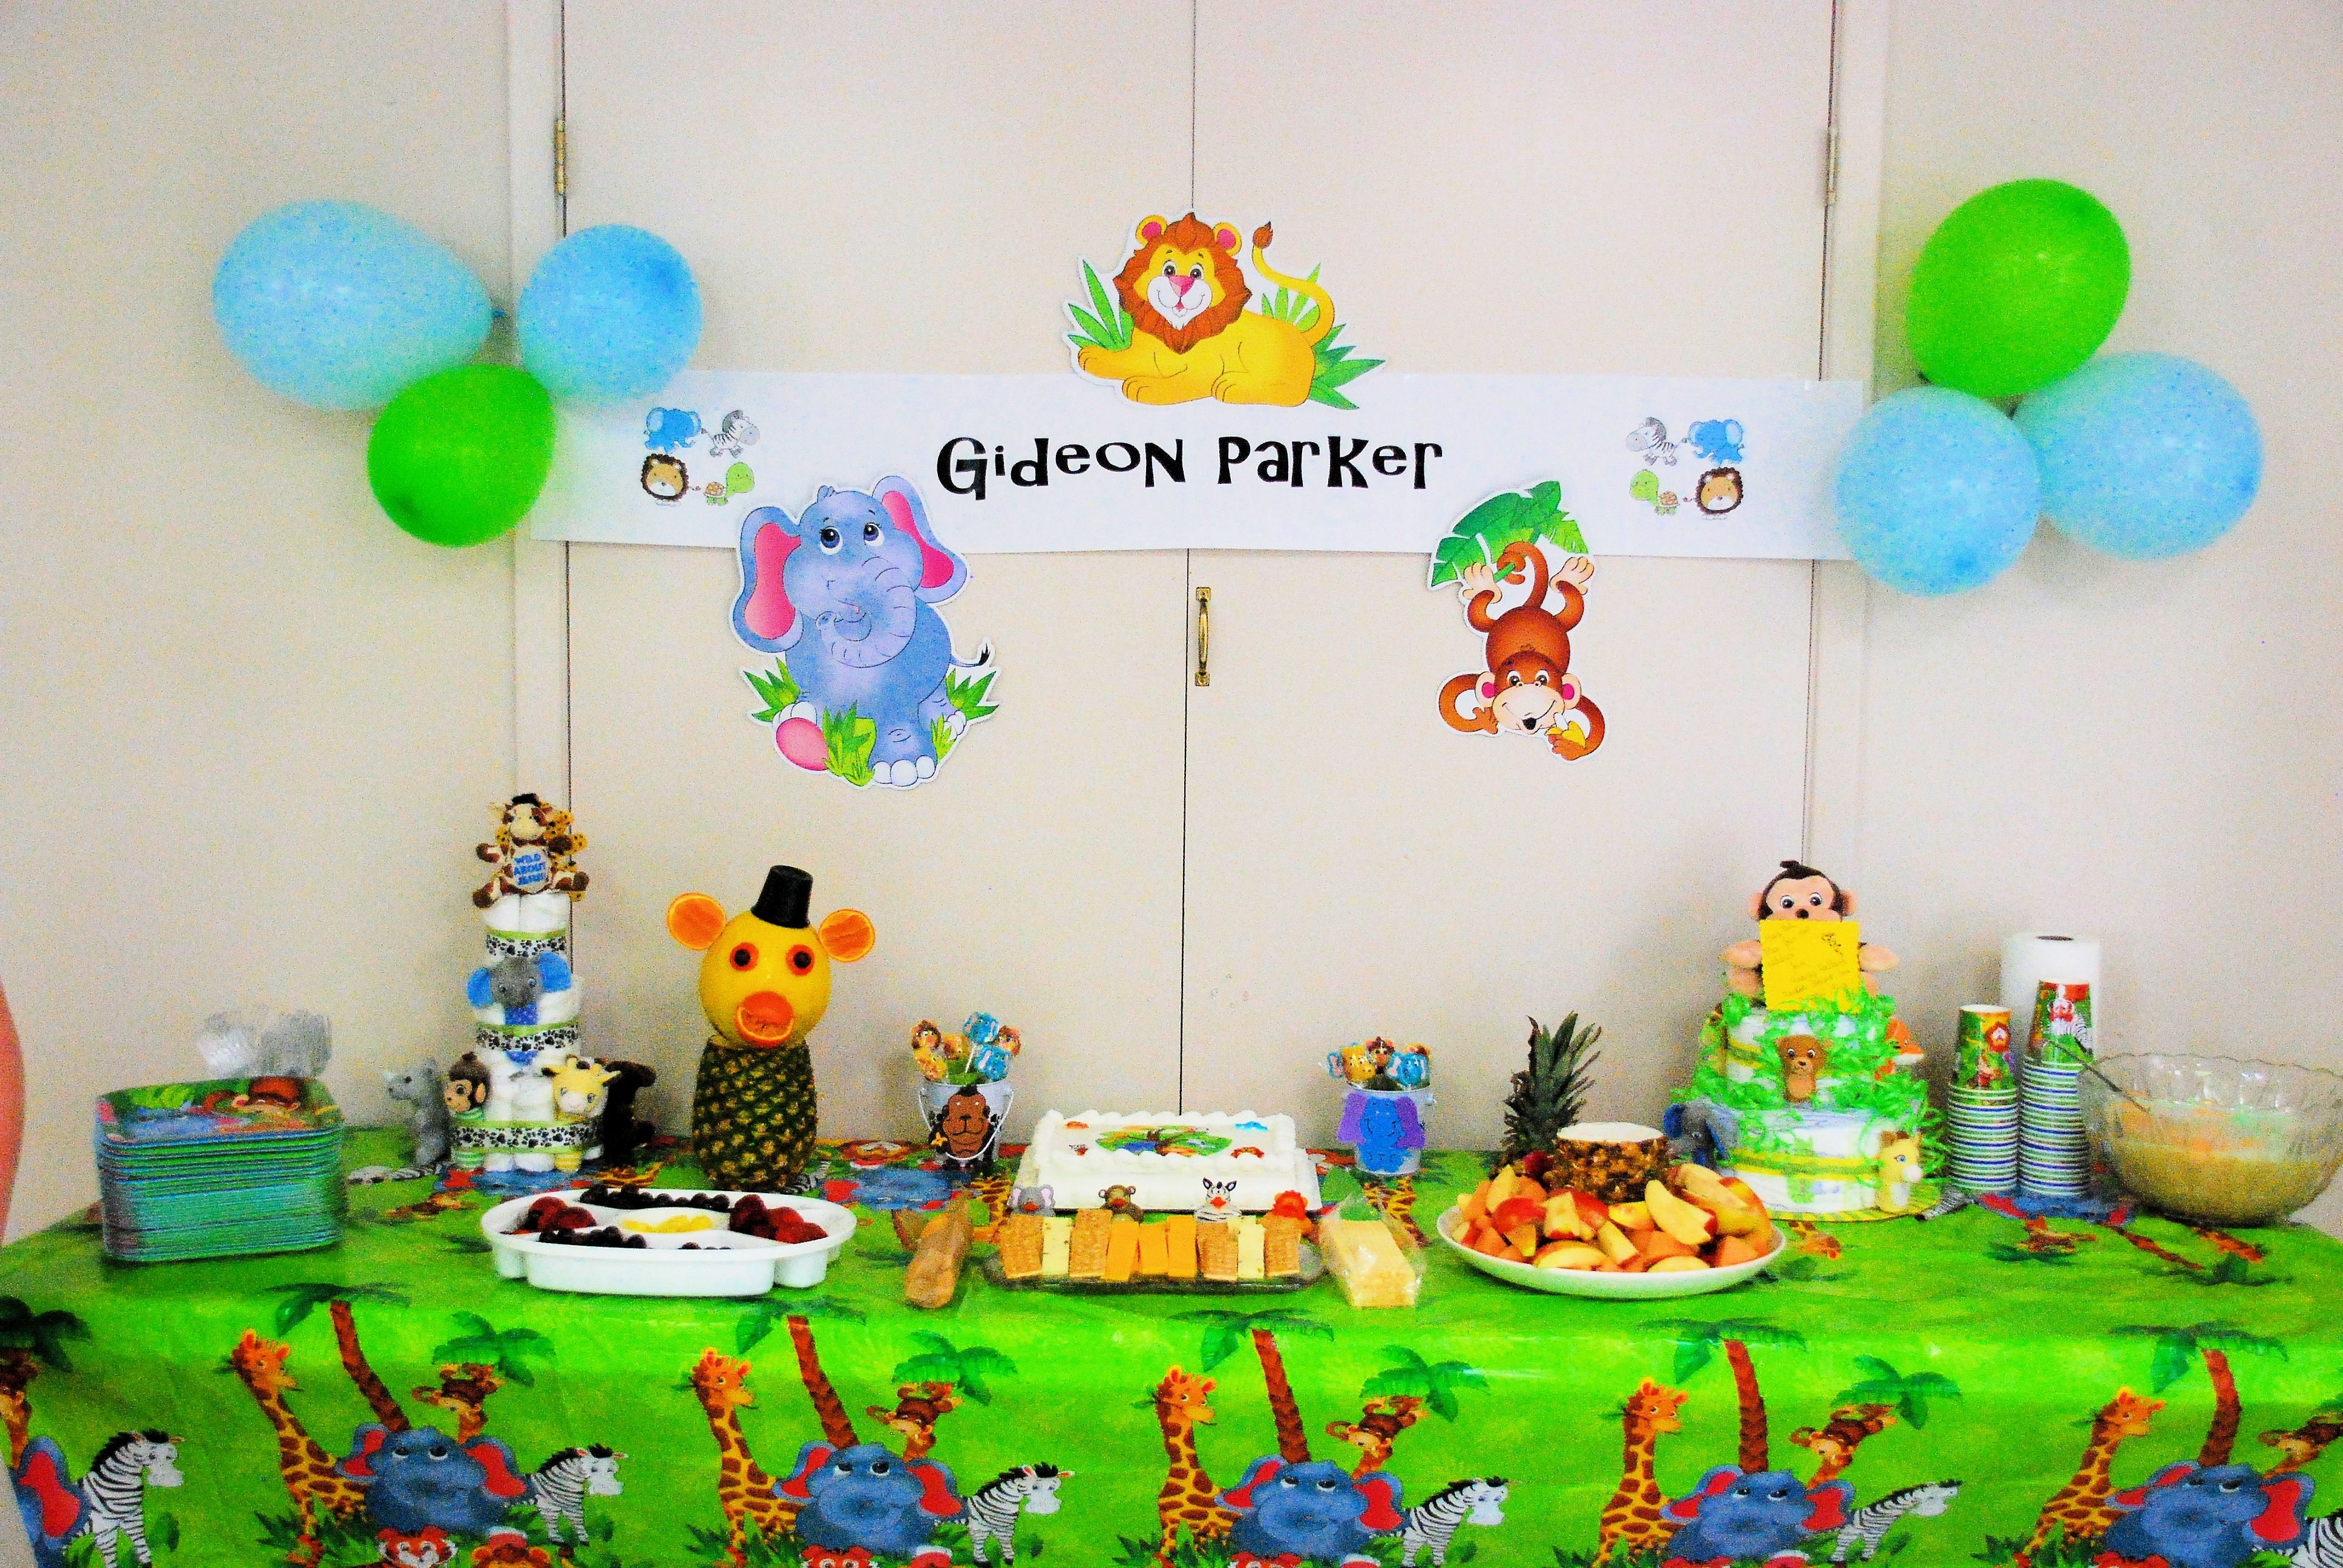 10 Awesome Jungle Themed Baby Shower Ideas jungle animal themed baby shower centerpieces c3 a2 c2 bb your